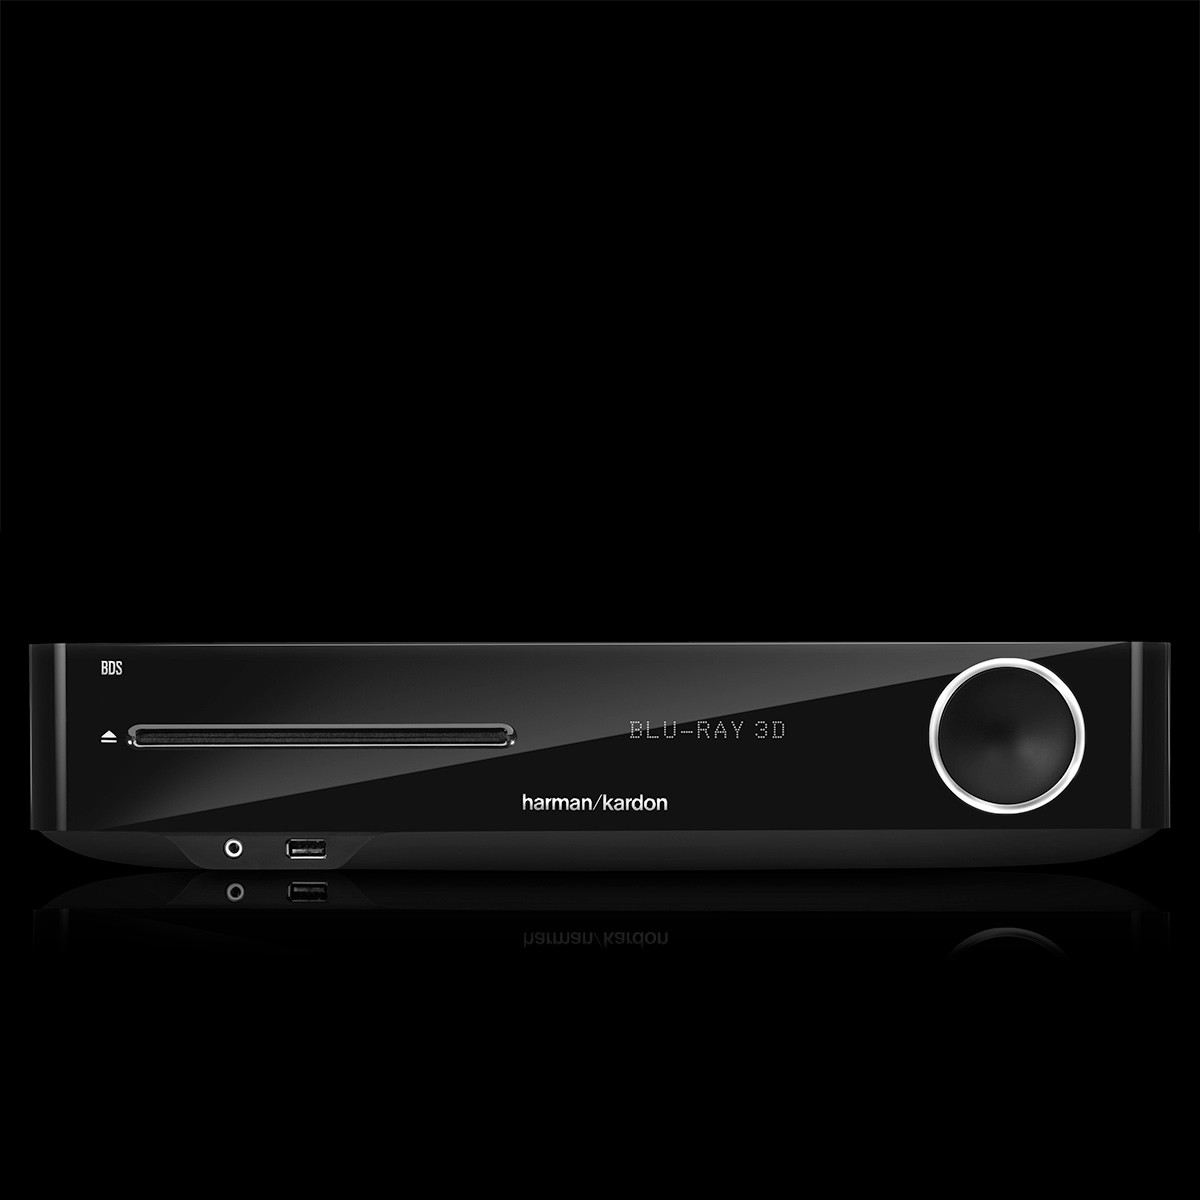 Harman/Kardon 3D Blu Ray Home Theatre Receiver